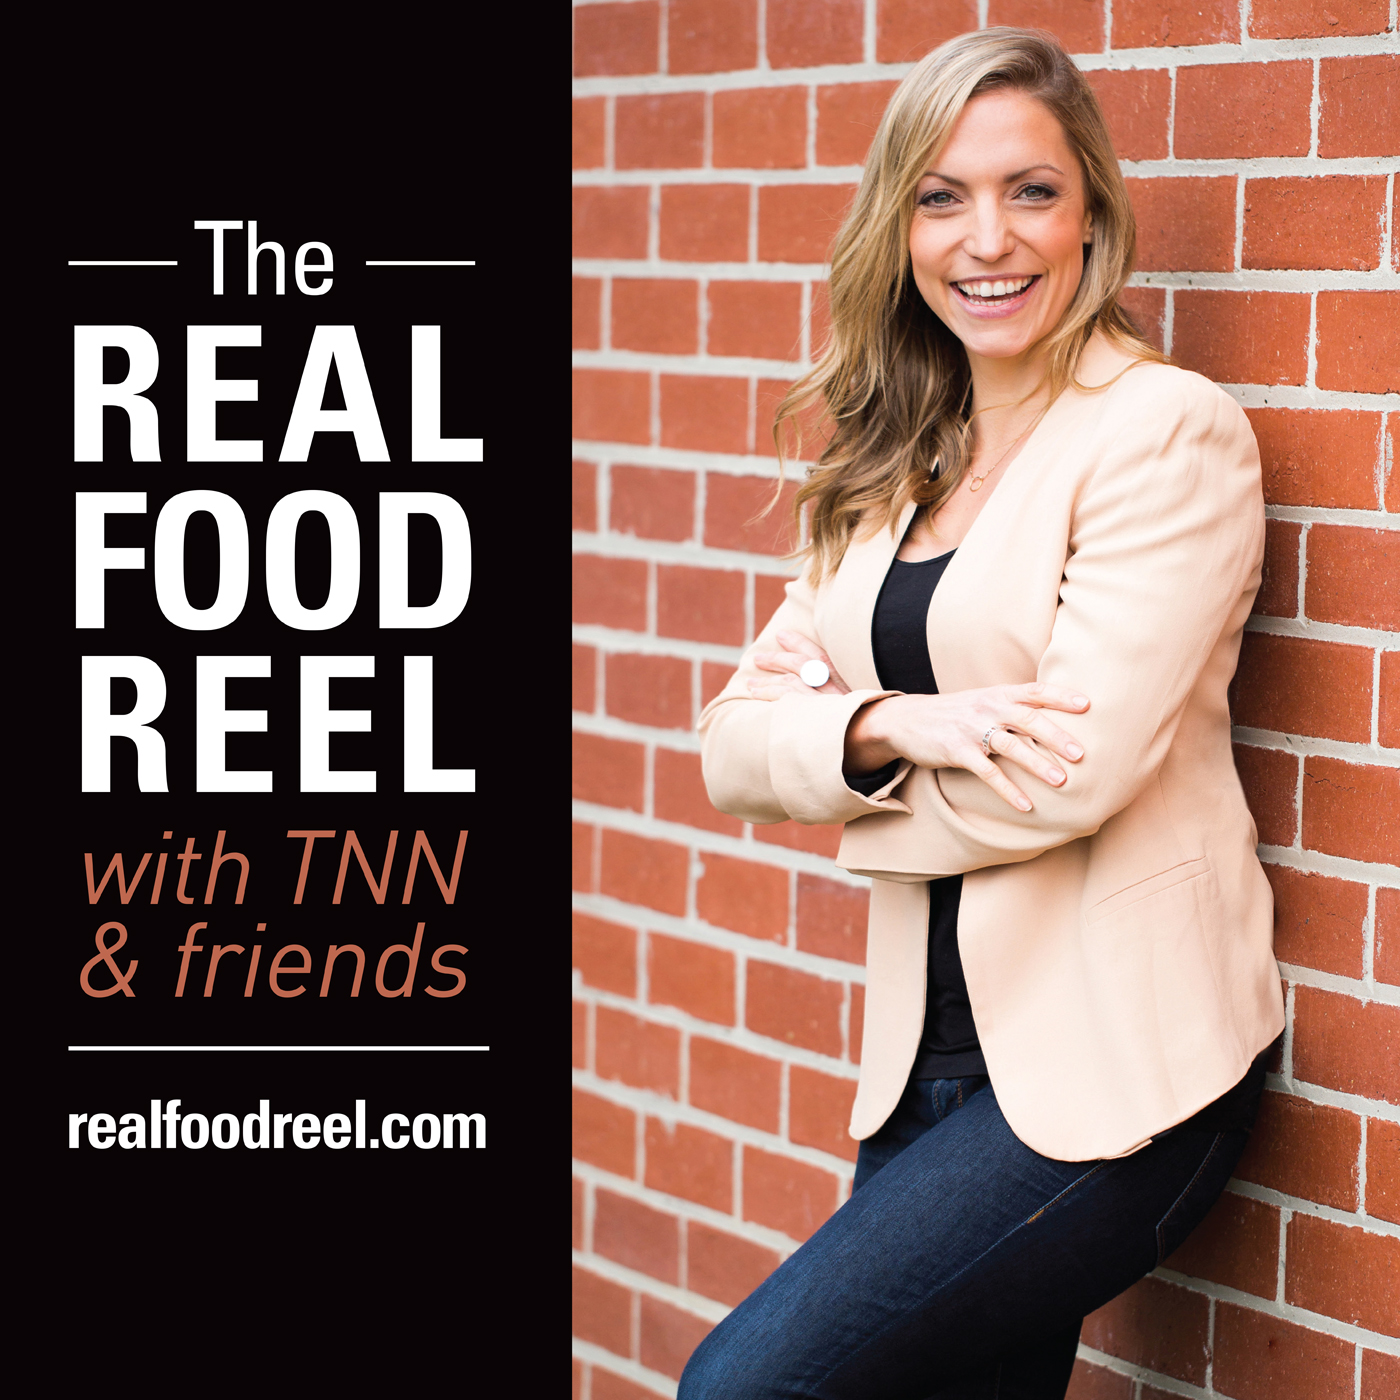 The Real Food Reel